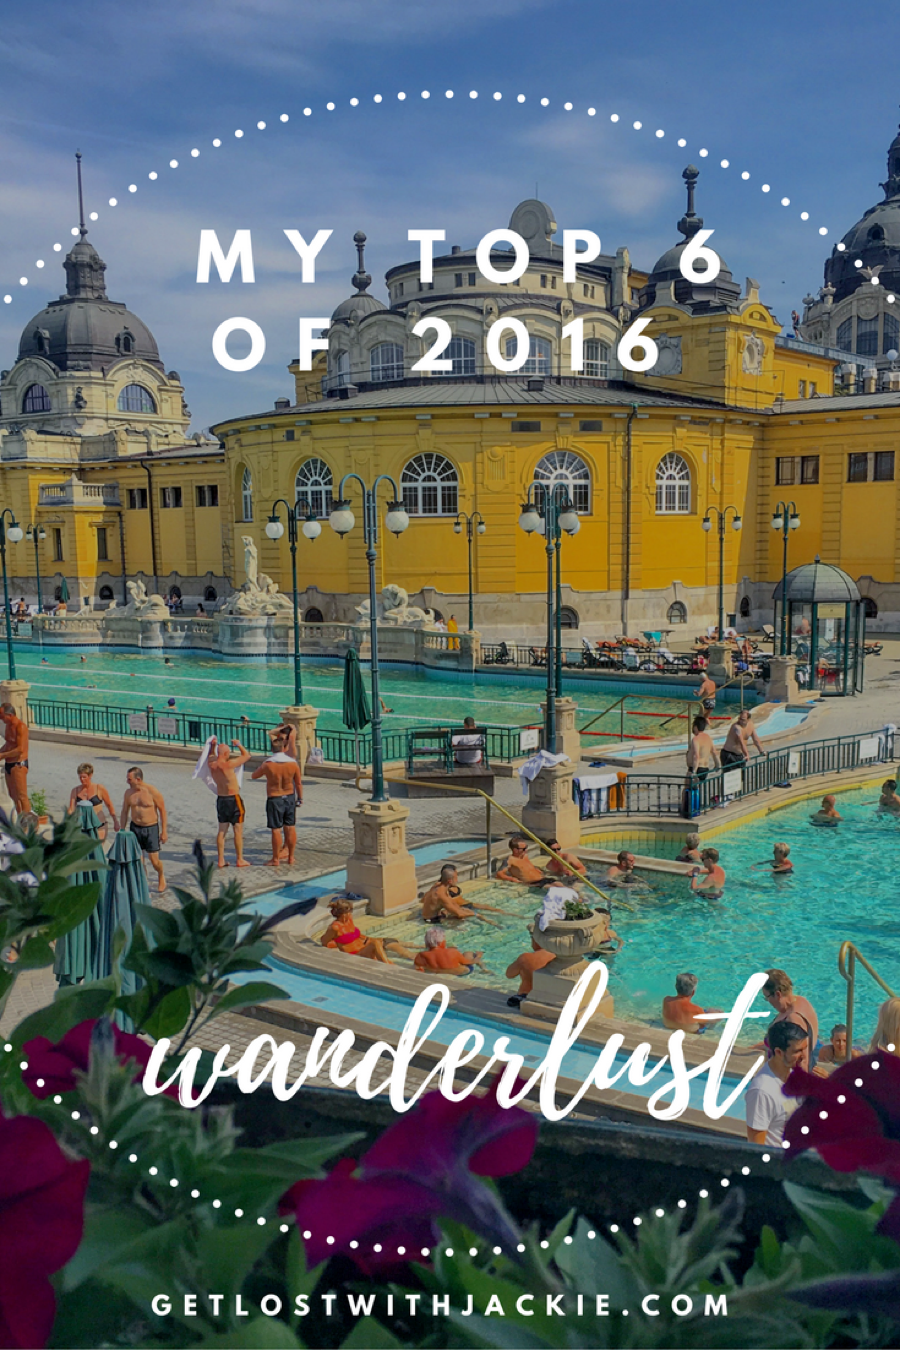 Jackie's Top 6 Destinations of 2016 - Get Lost With Jackie